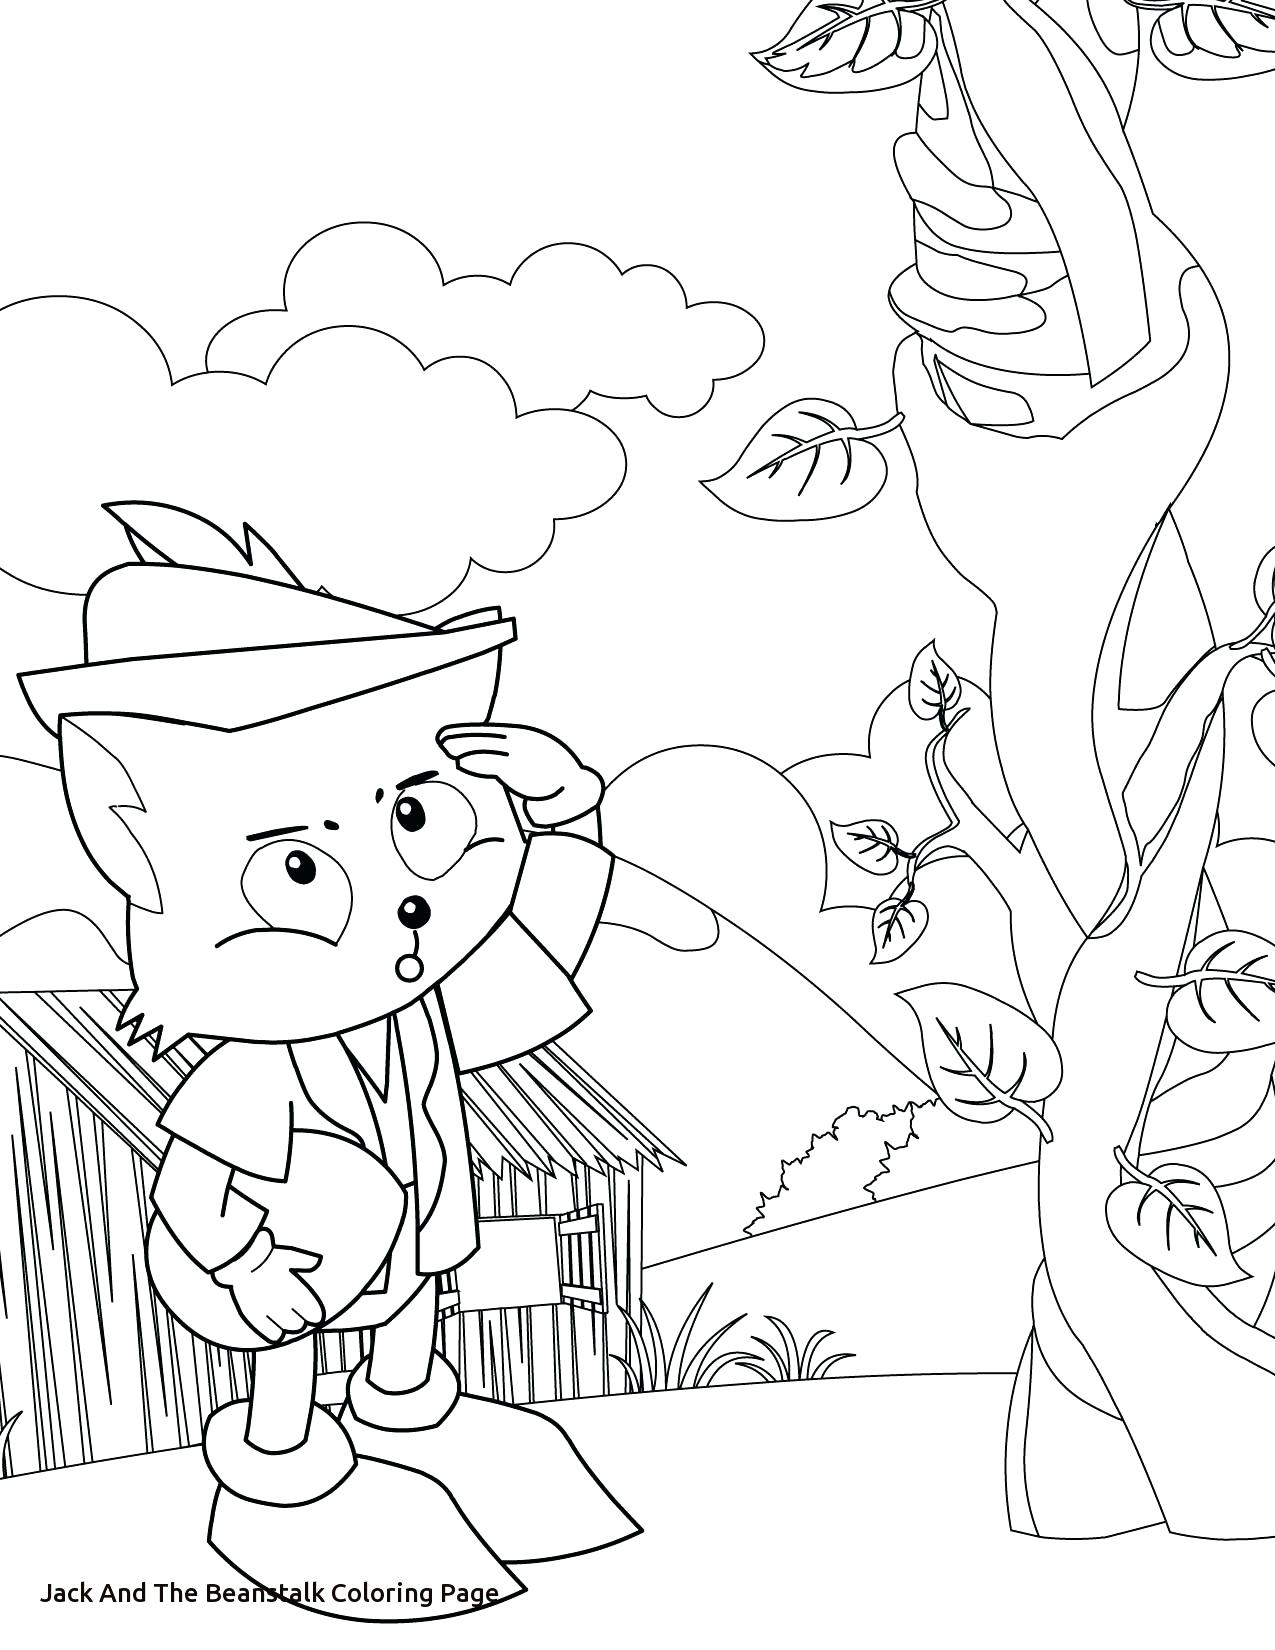 1275x1650 Coloring Jack And The Beanstalk Coloring Pages